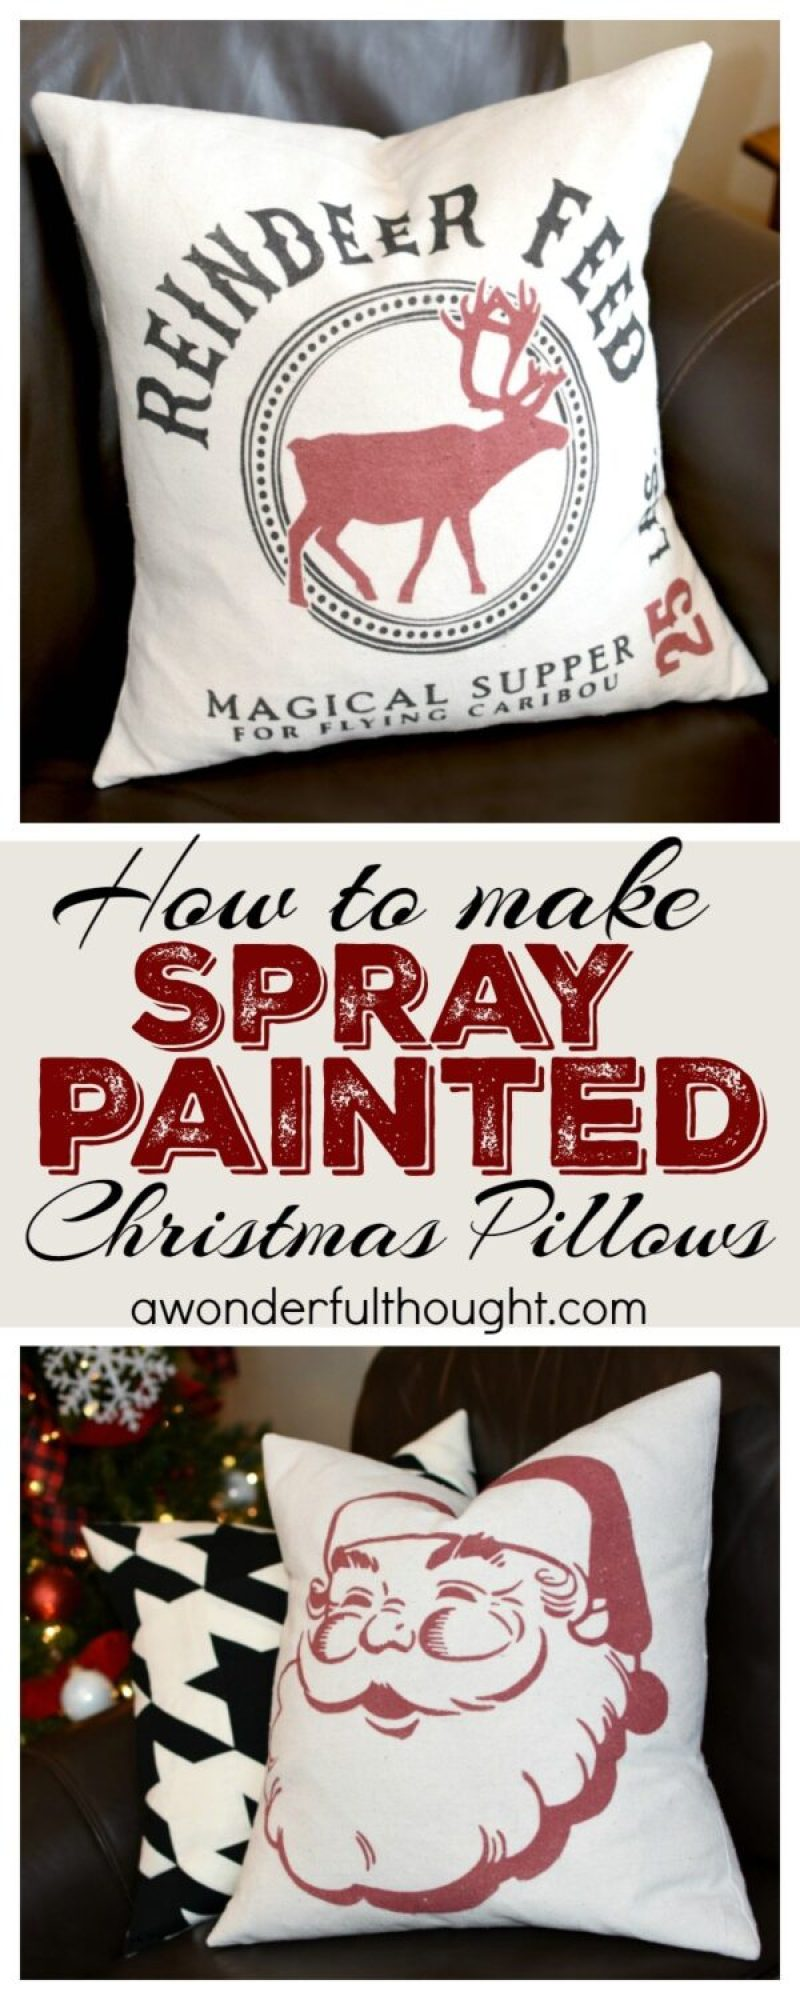 15 Holly Jolly Christmas DIY Projects #diy #christmasdiy #christmascrafts #awonderfulthought.com